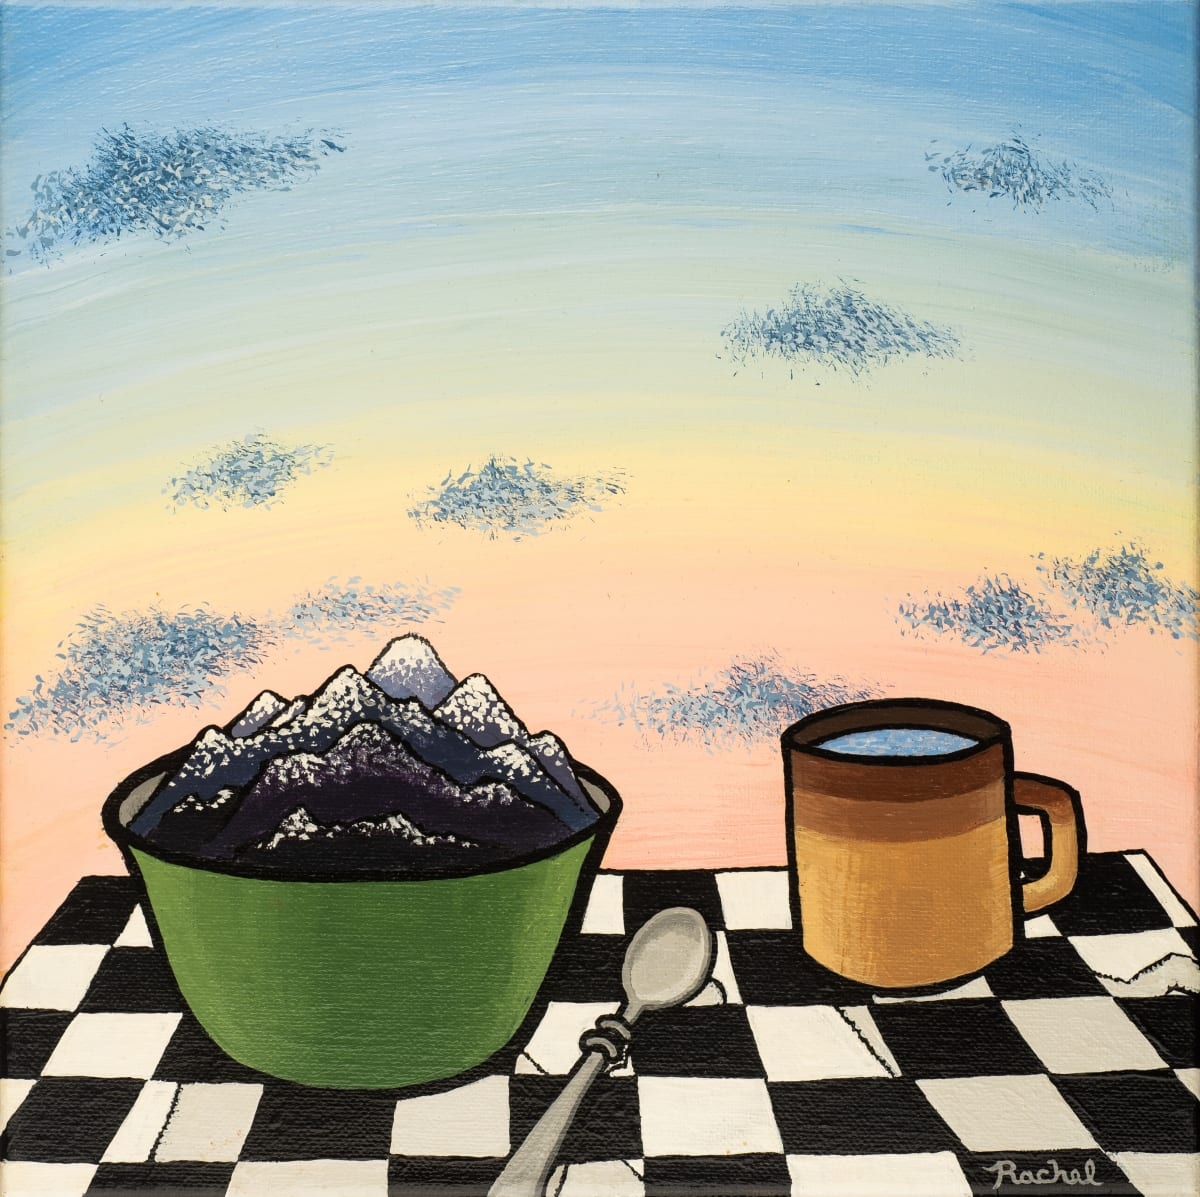 Breakfast of Champions by Rachel Perry